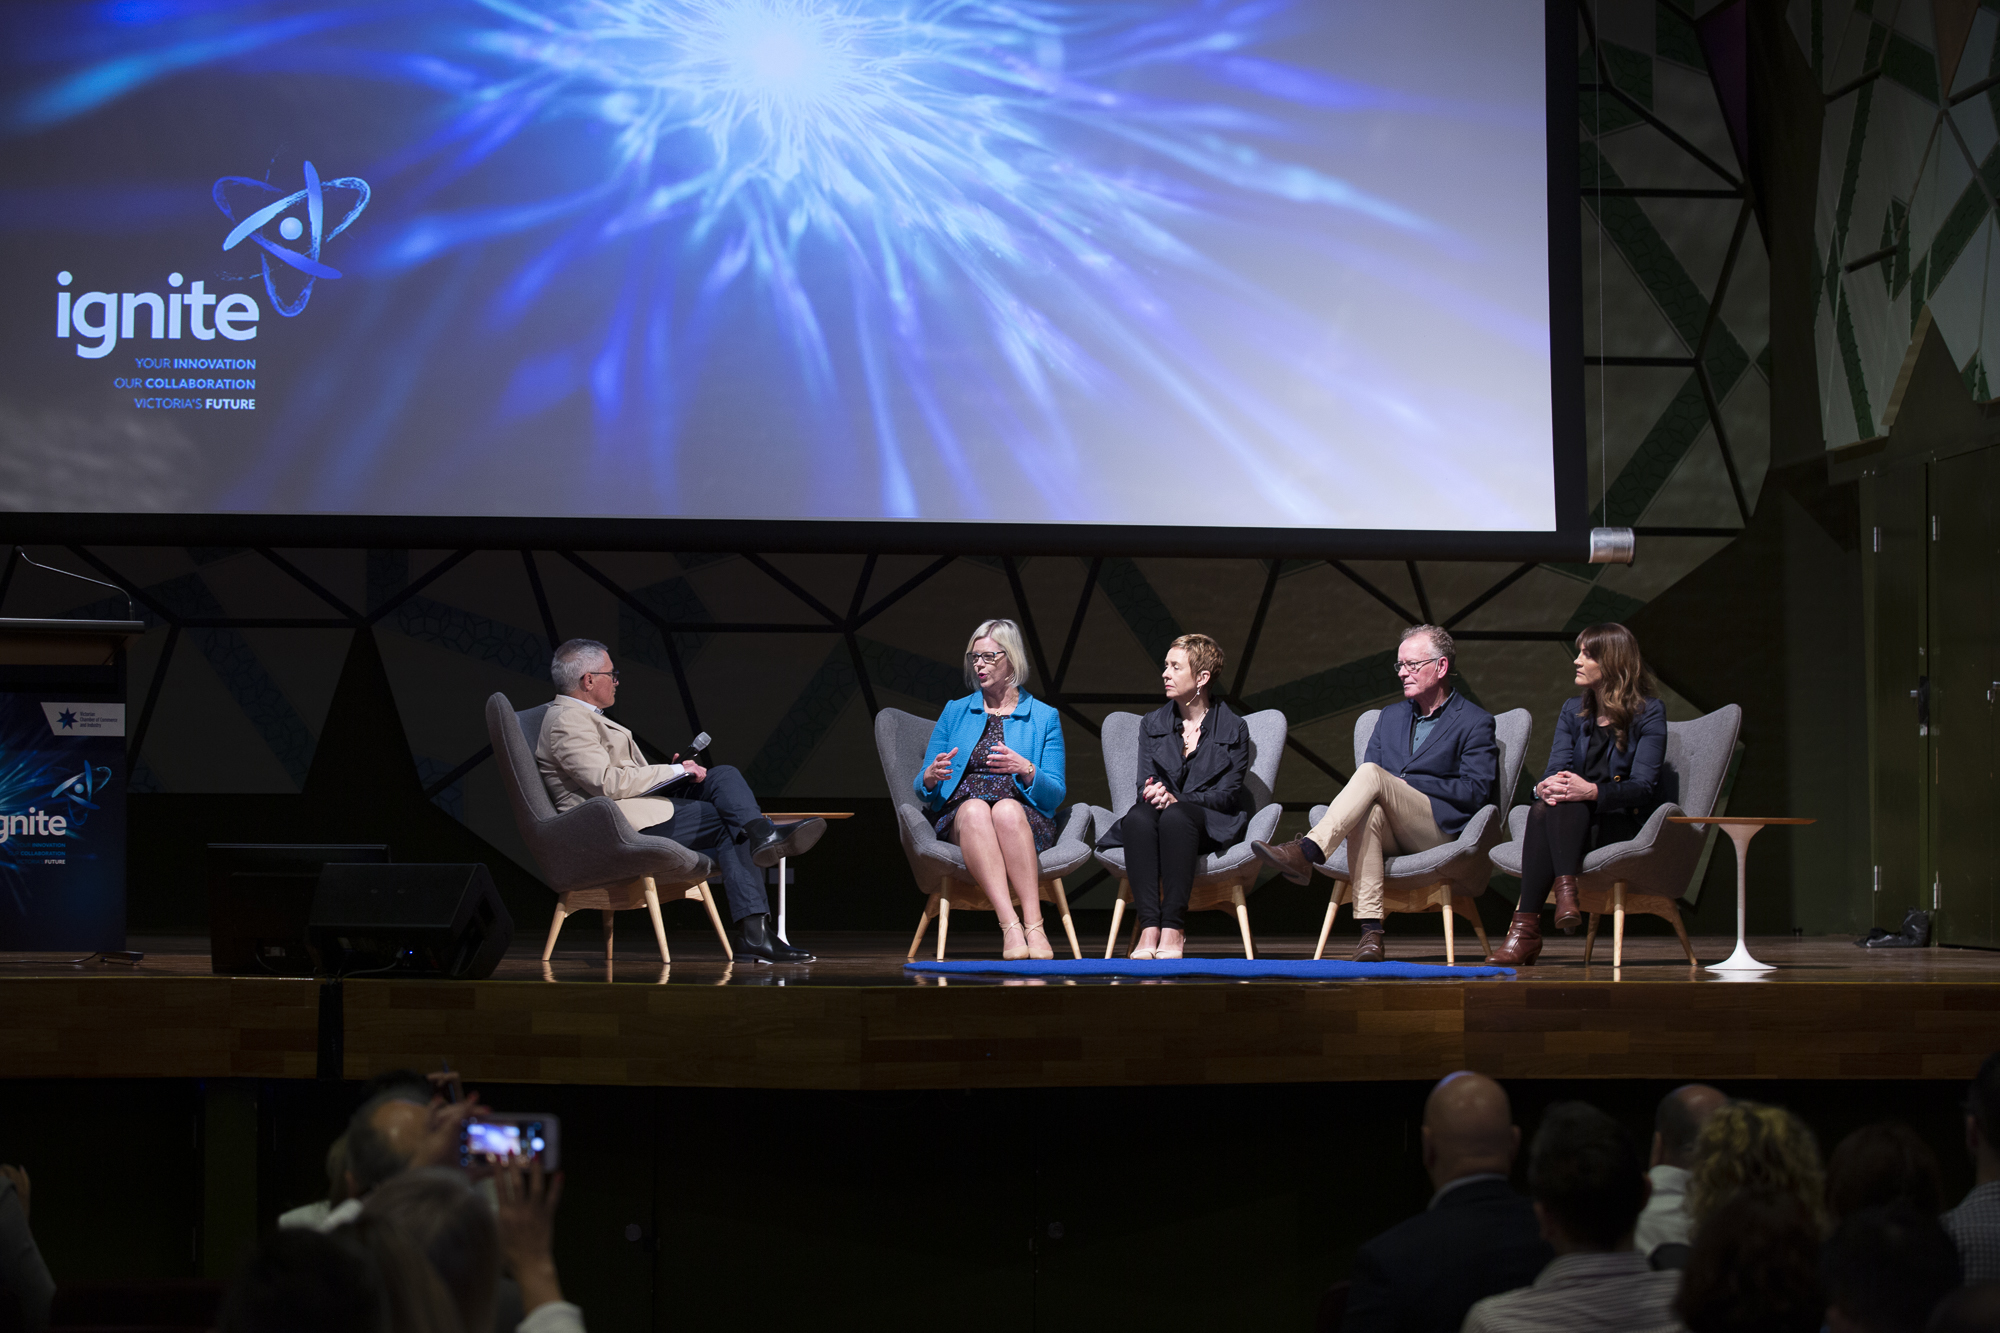 /content/dam/rmit/rmit-images/news/2019/may/ignite-event/Ignite%20panel%20masthead.jpg